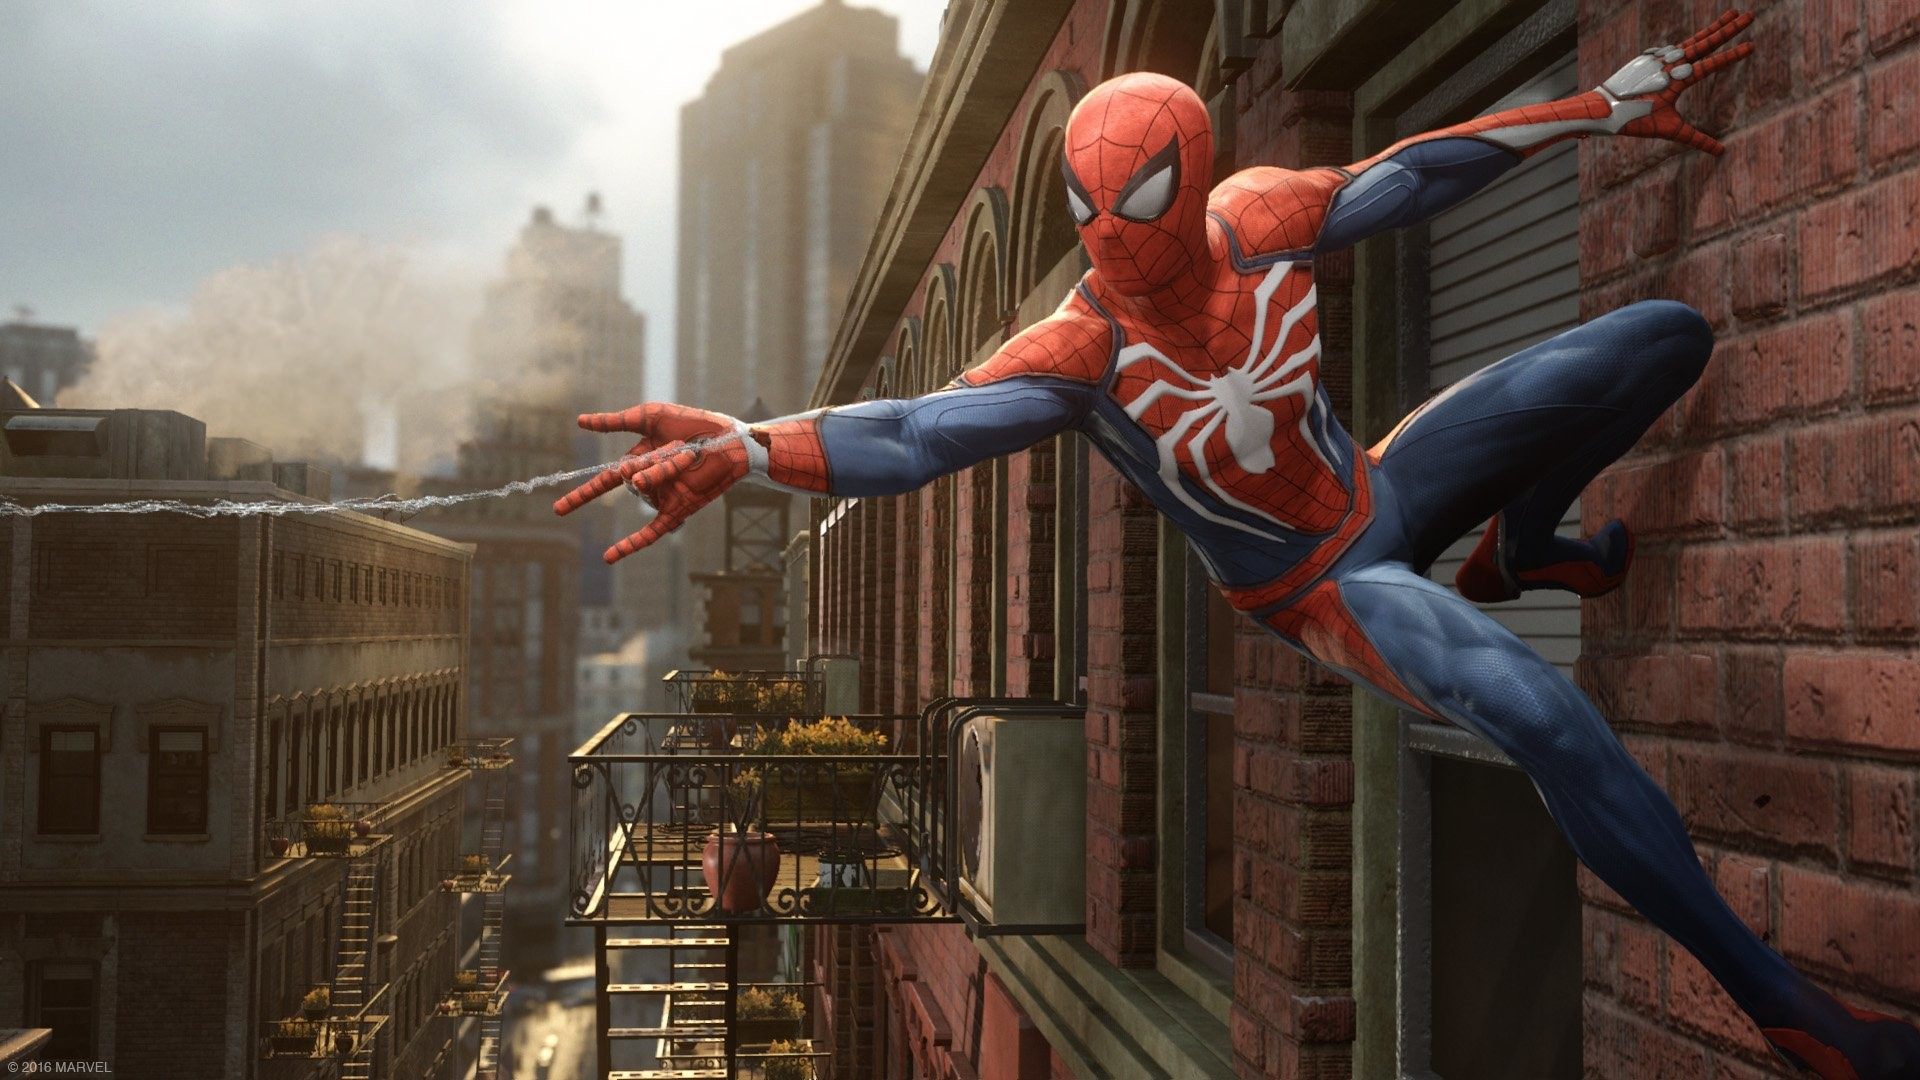 Superior Spiderman Wallpaper Hd 74 Pictures